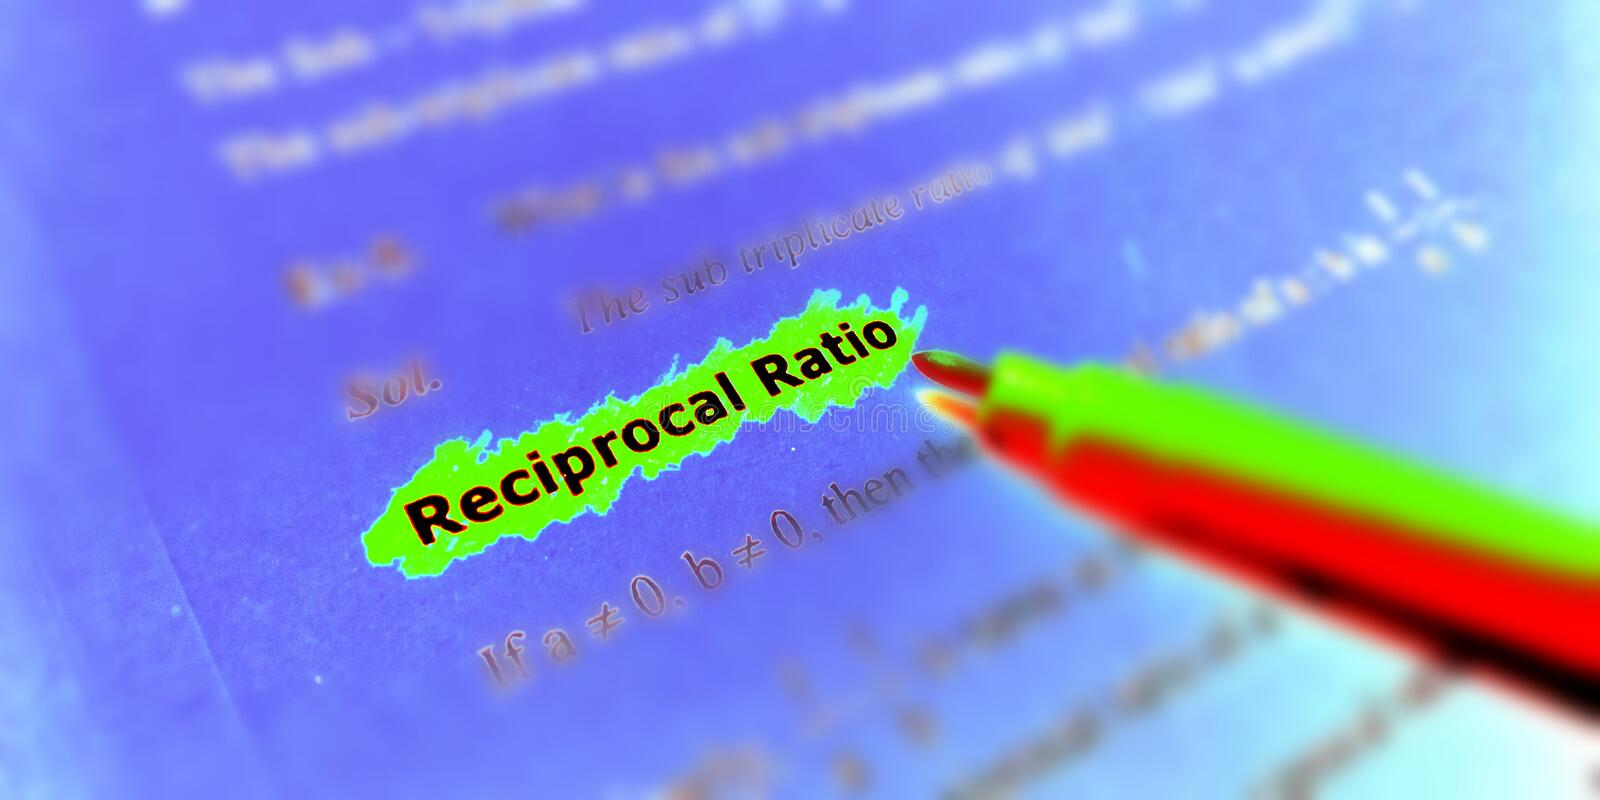 Reciprocal ratio text highlighted on green colour highlighted background illustrations image stock photography